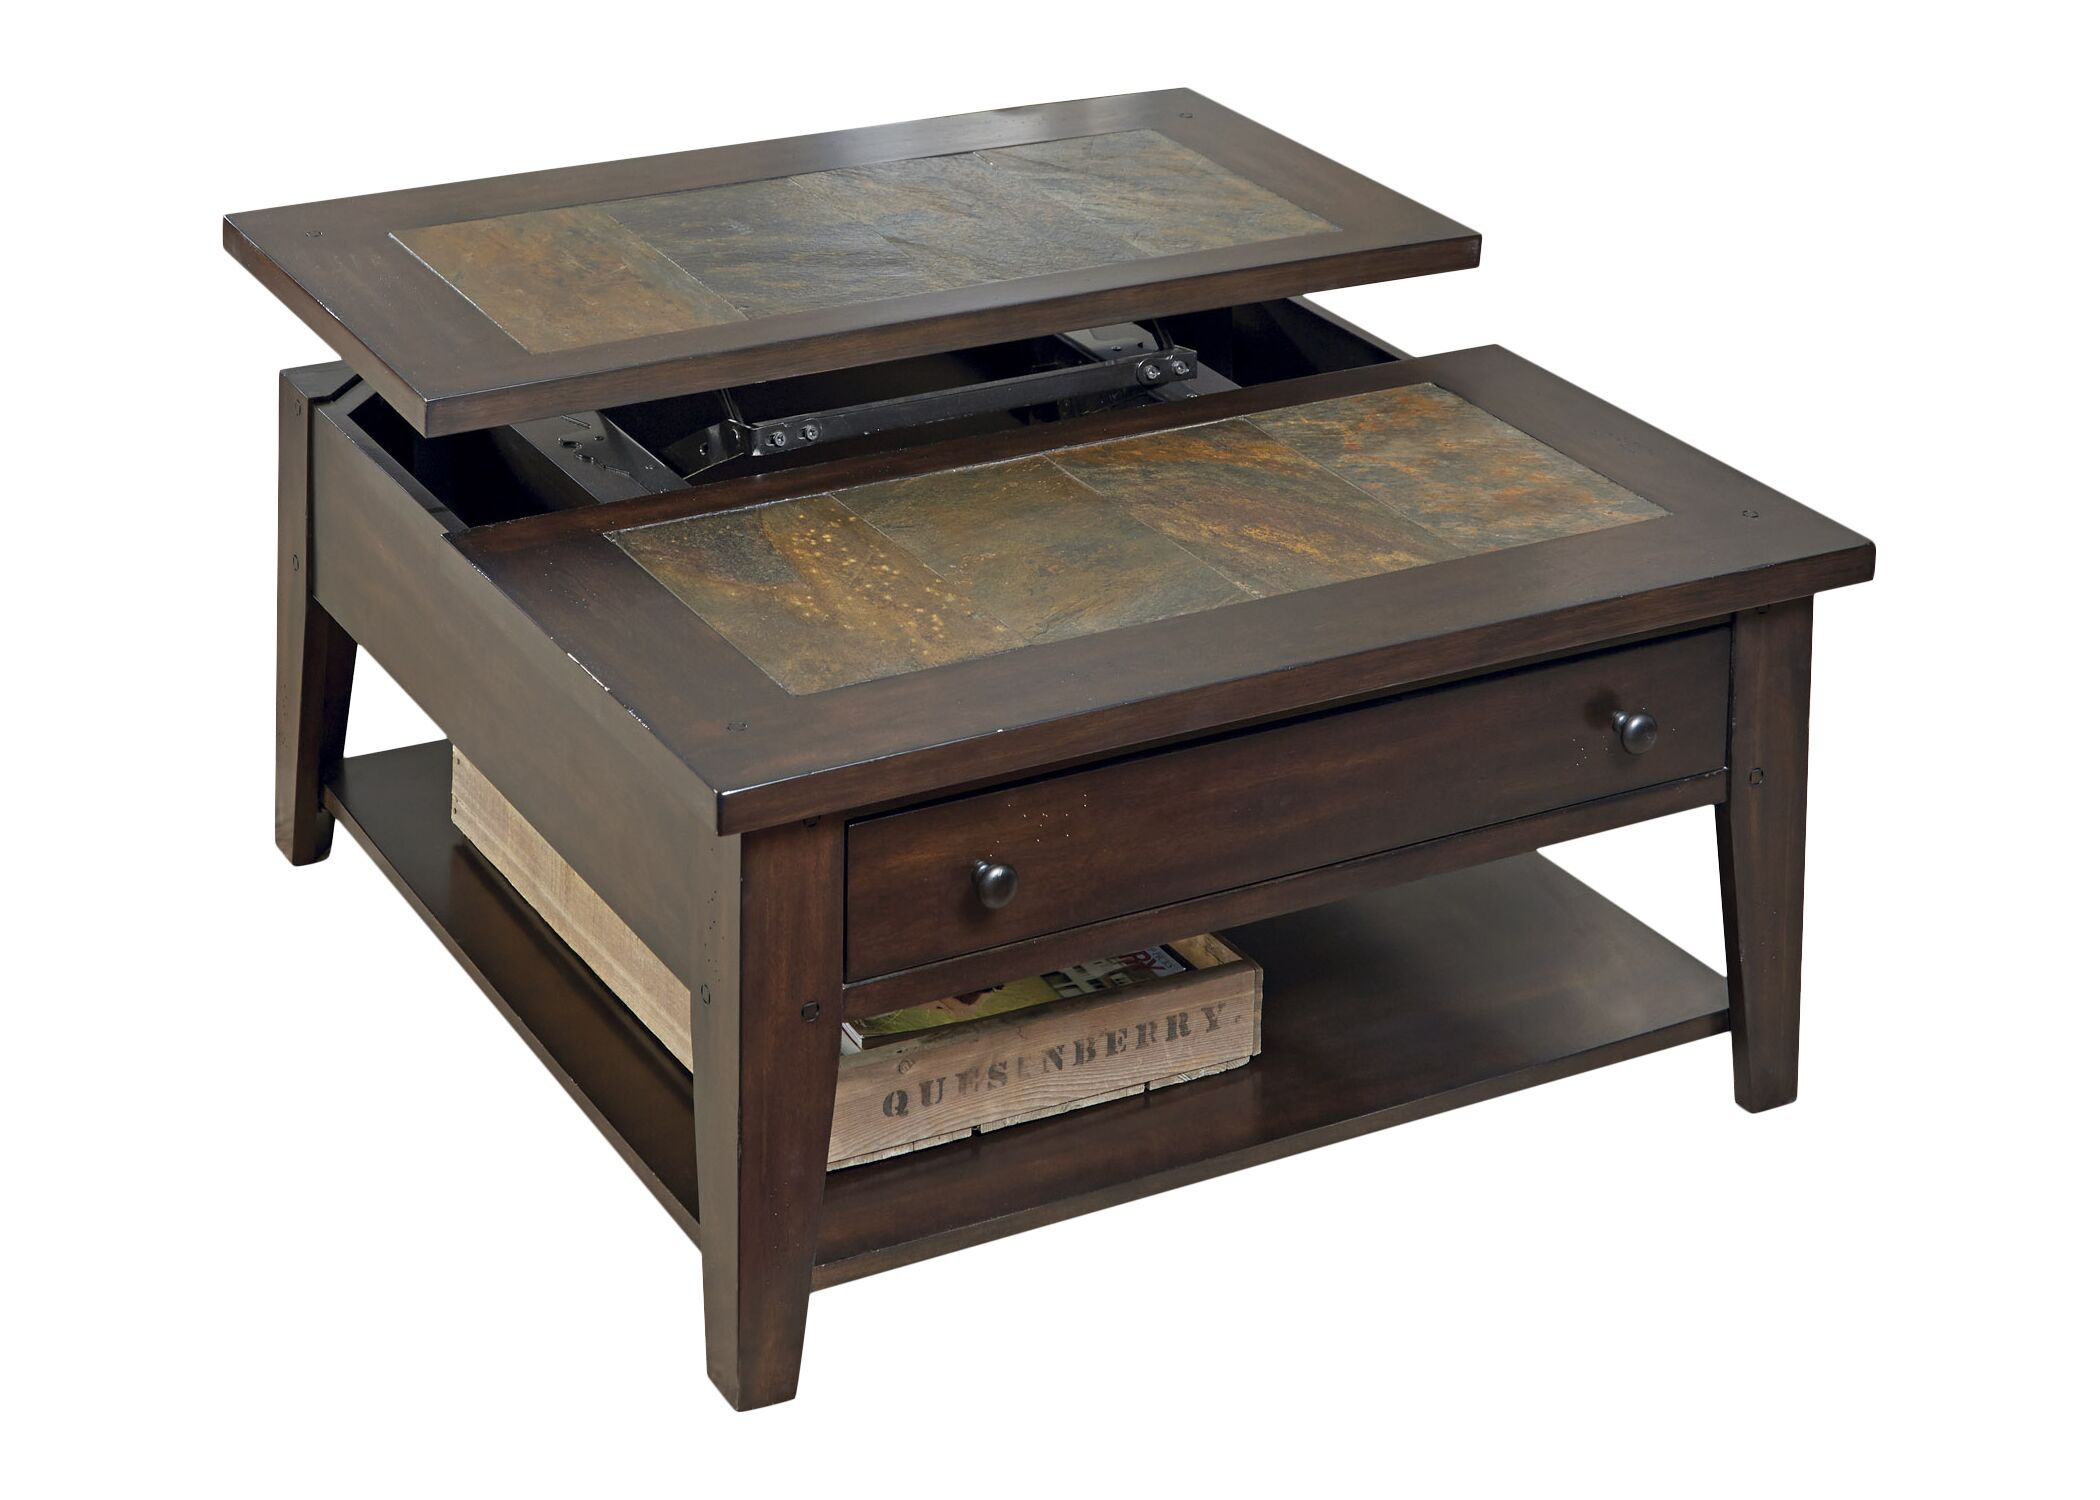 Leadville North Coffee Table with Lift Top